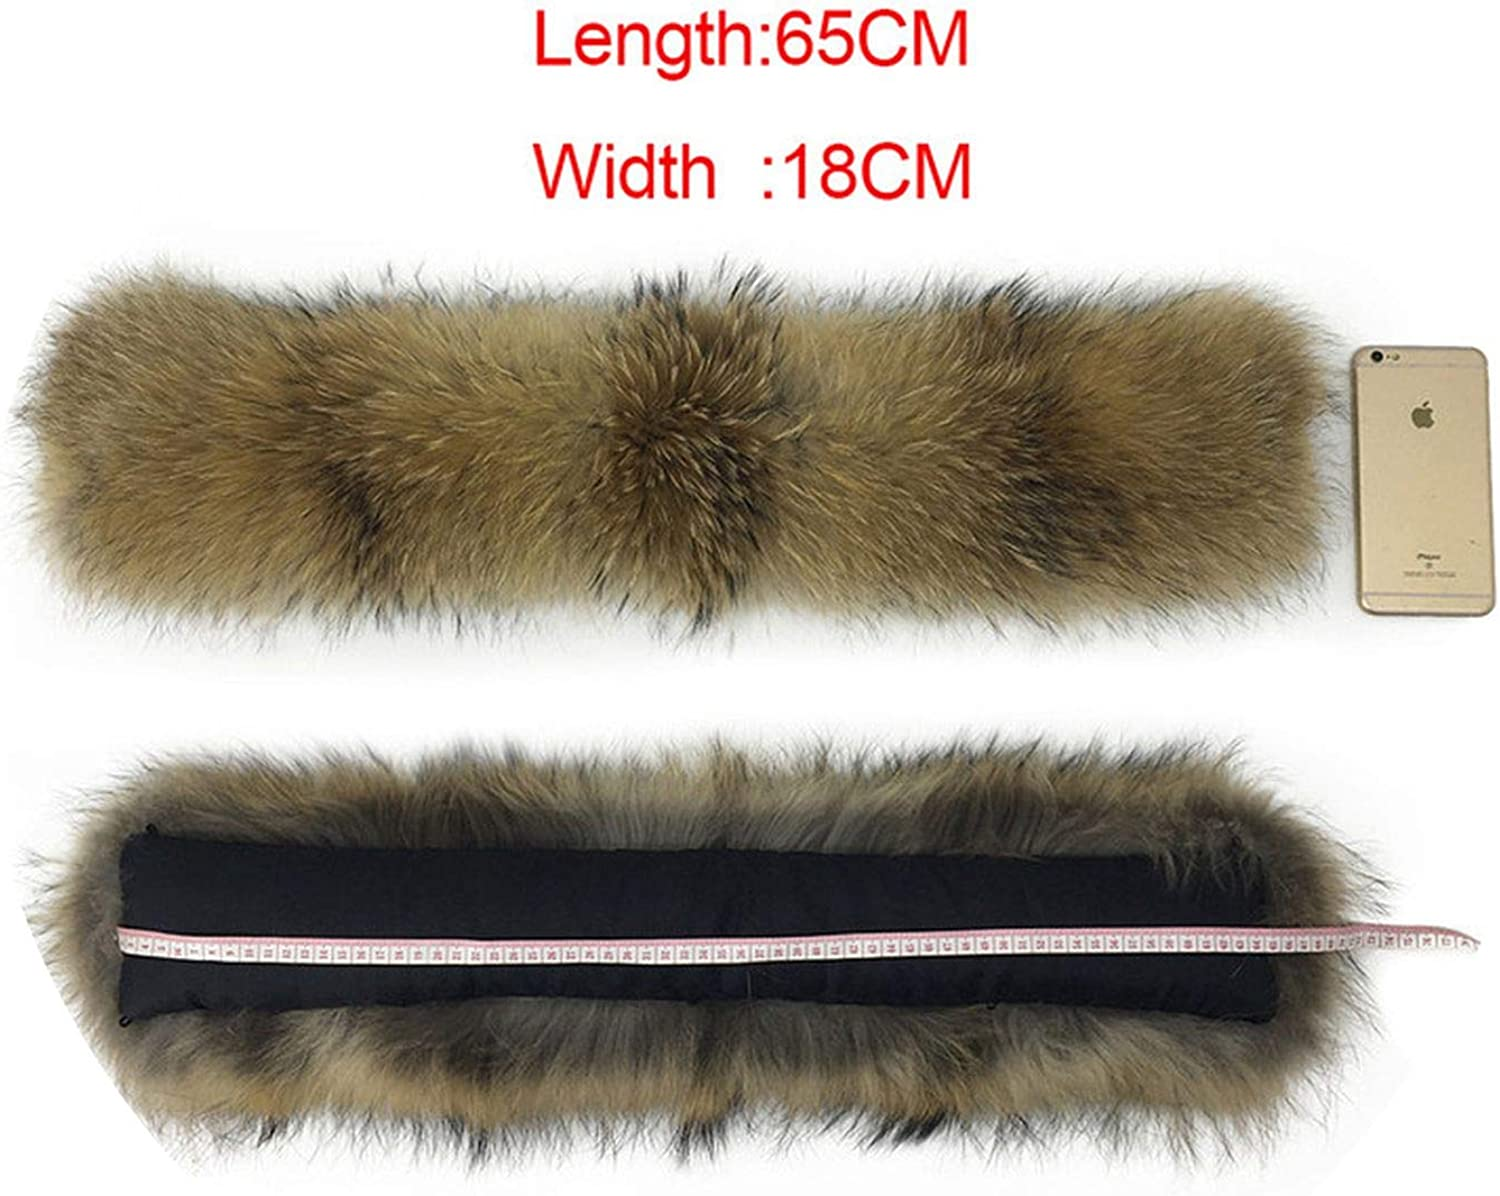 65cm 75cm 80cm 85cn 90cm 100% Natural Real Raccoon Collar Women Scarf Winter Coat Neck Cap Long Warm Genuine Real Sarf,65CM X 18CM